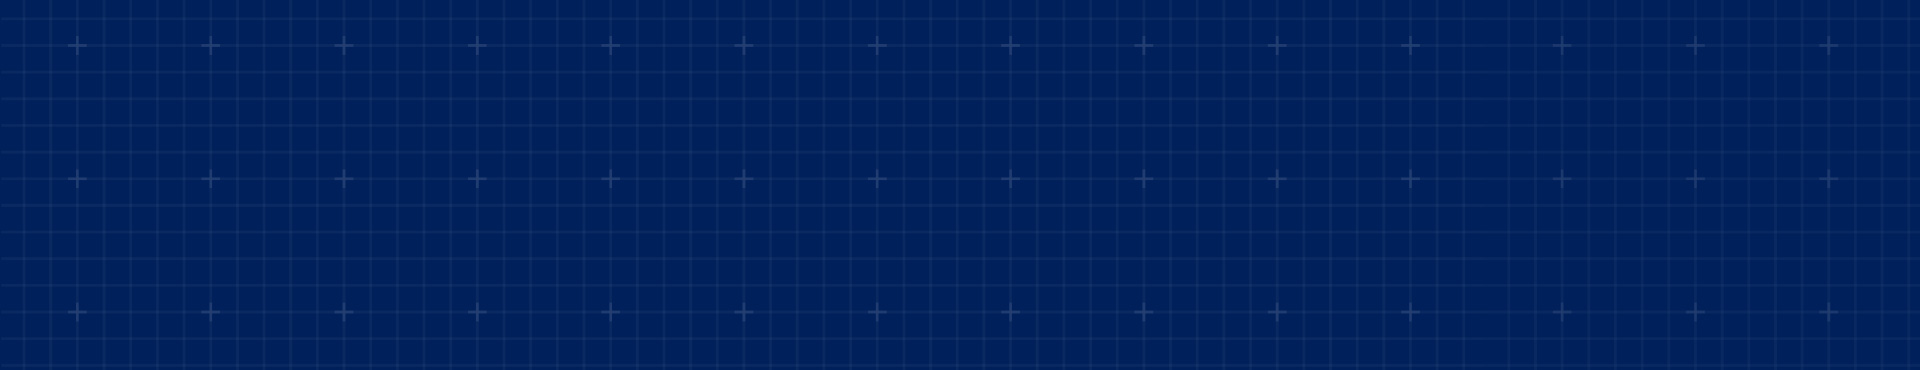 Background blue grid pattern